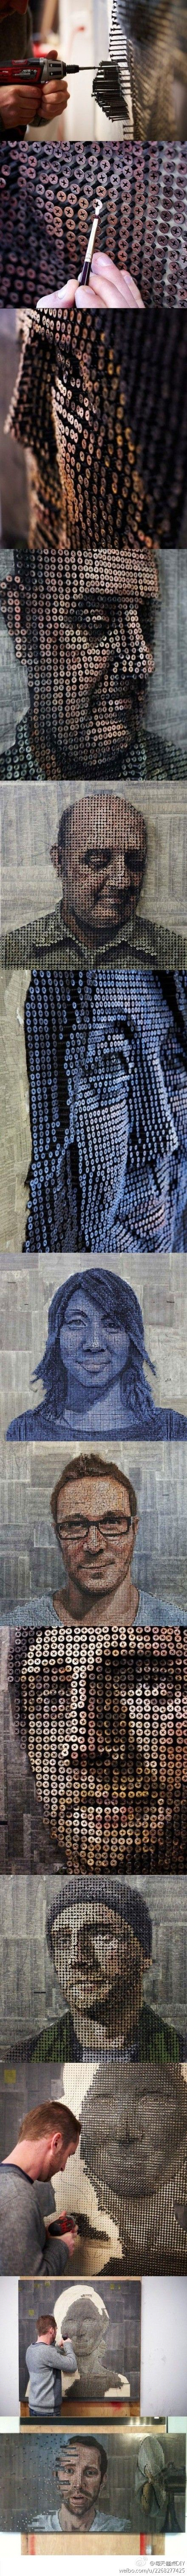 Well Screwed 3D Portraits by Andrew Myers